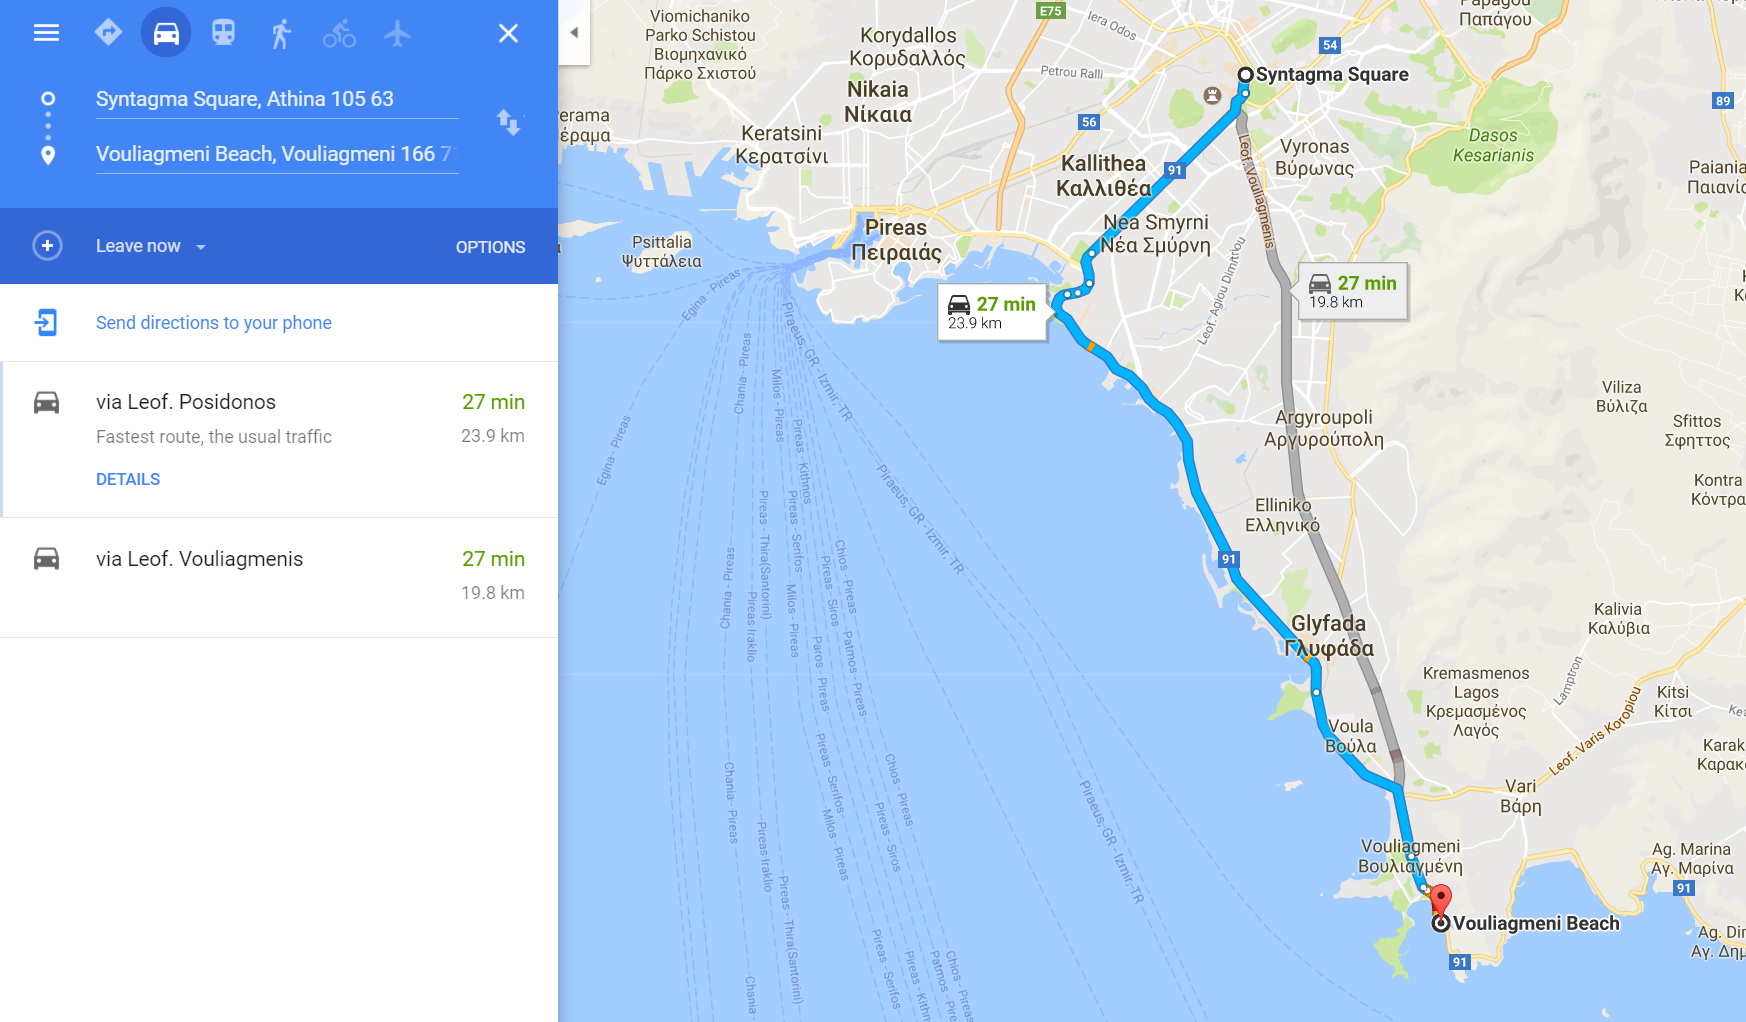 How To Get Vouliagmeni Beach From Athens With A Taxi